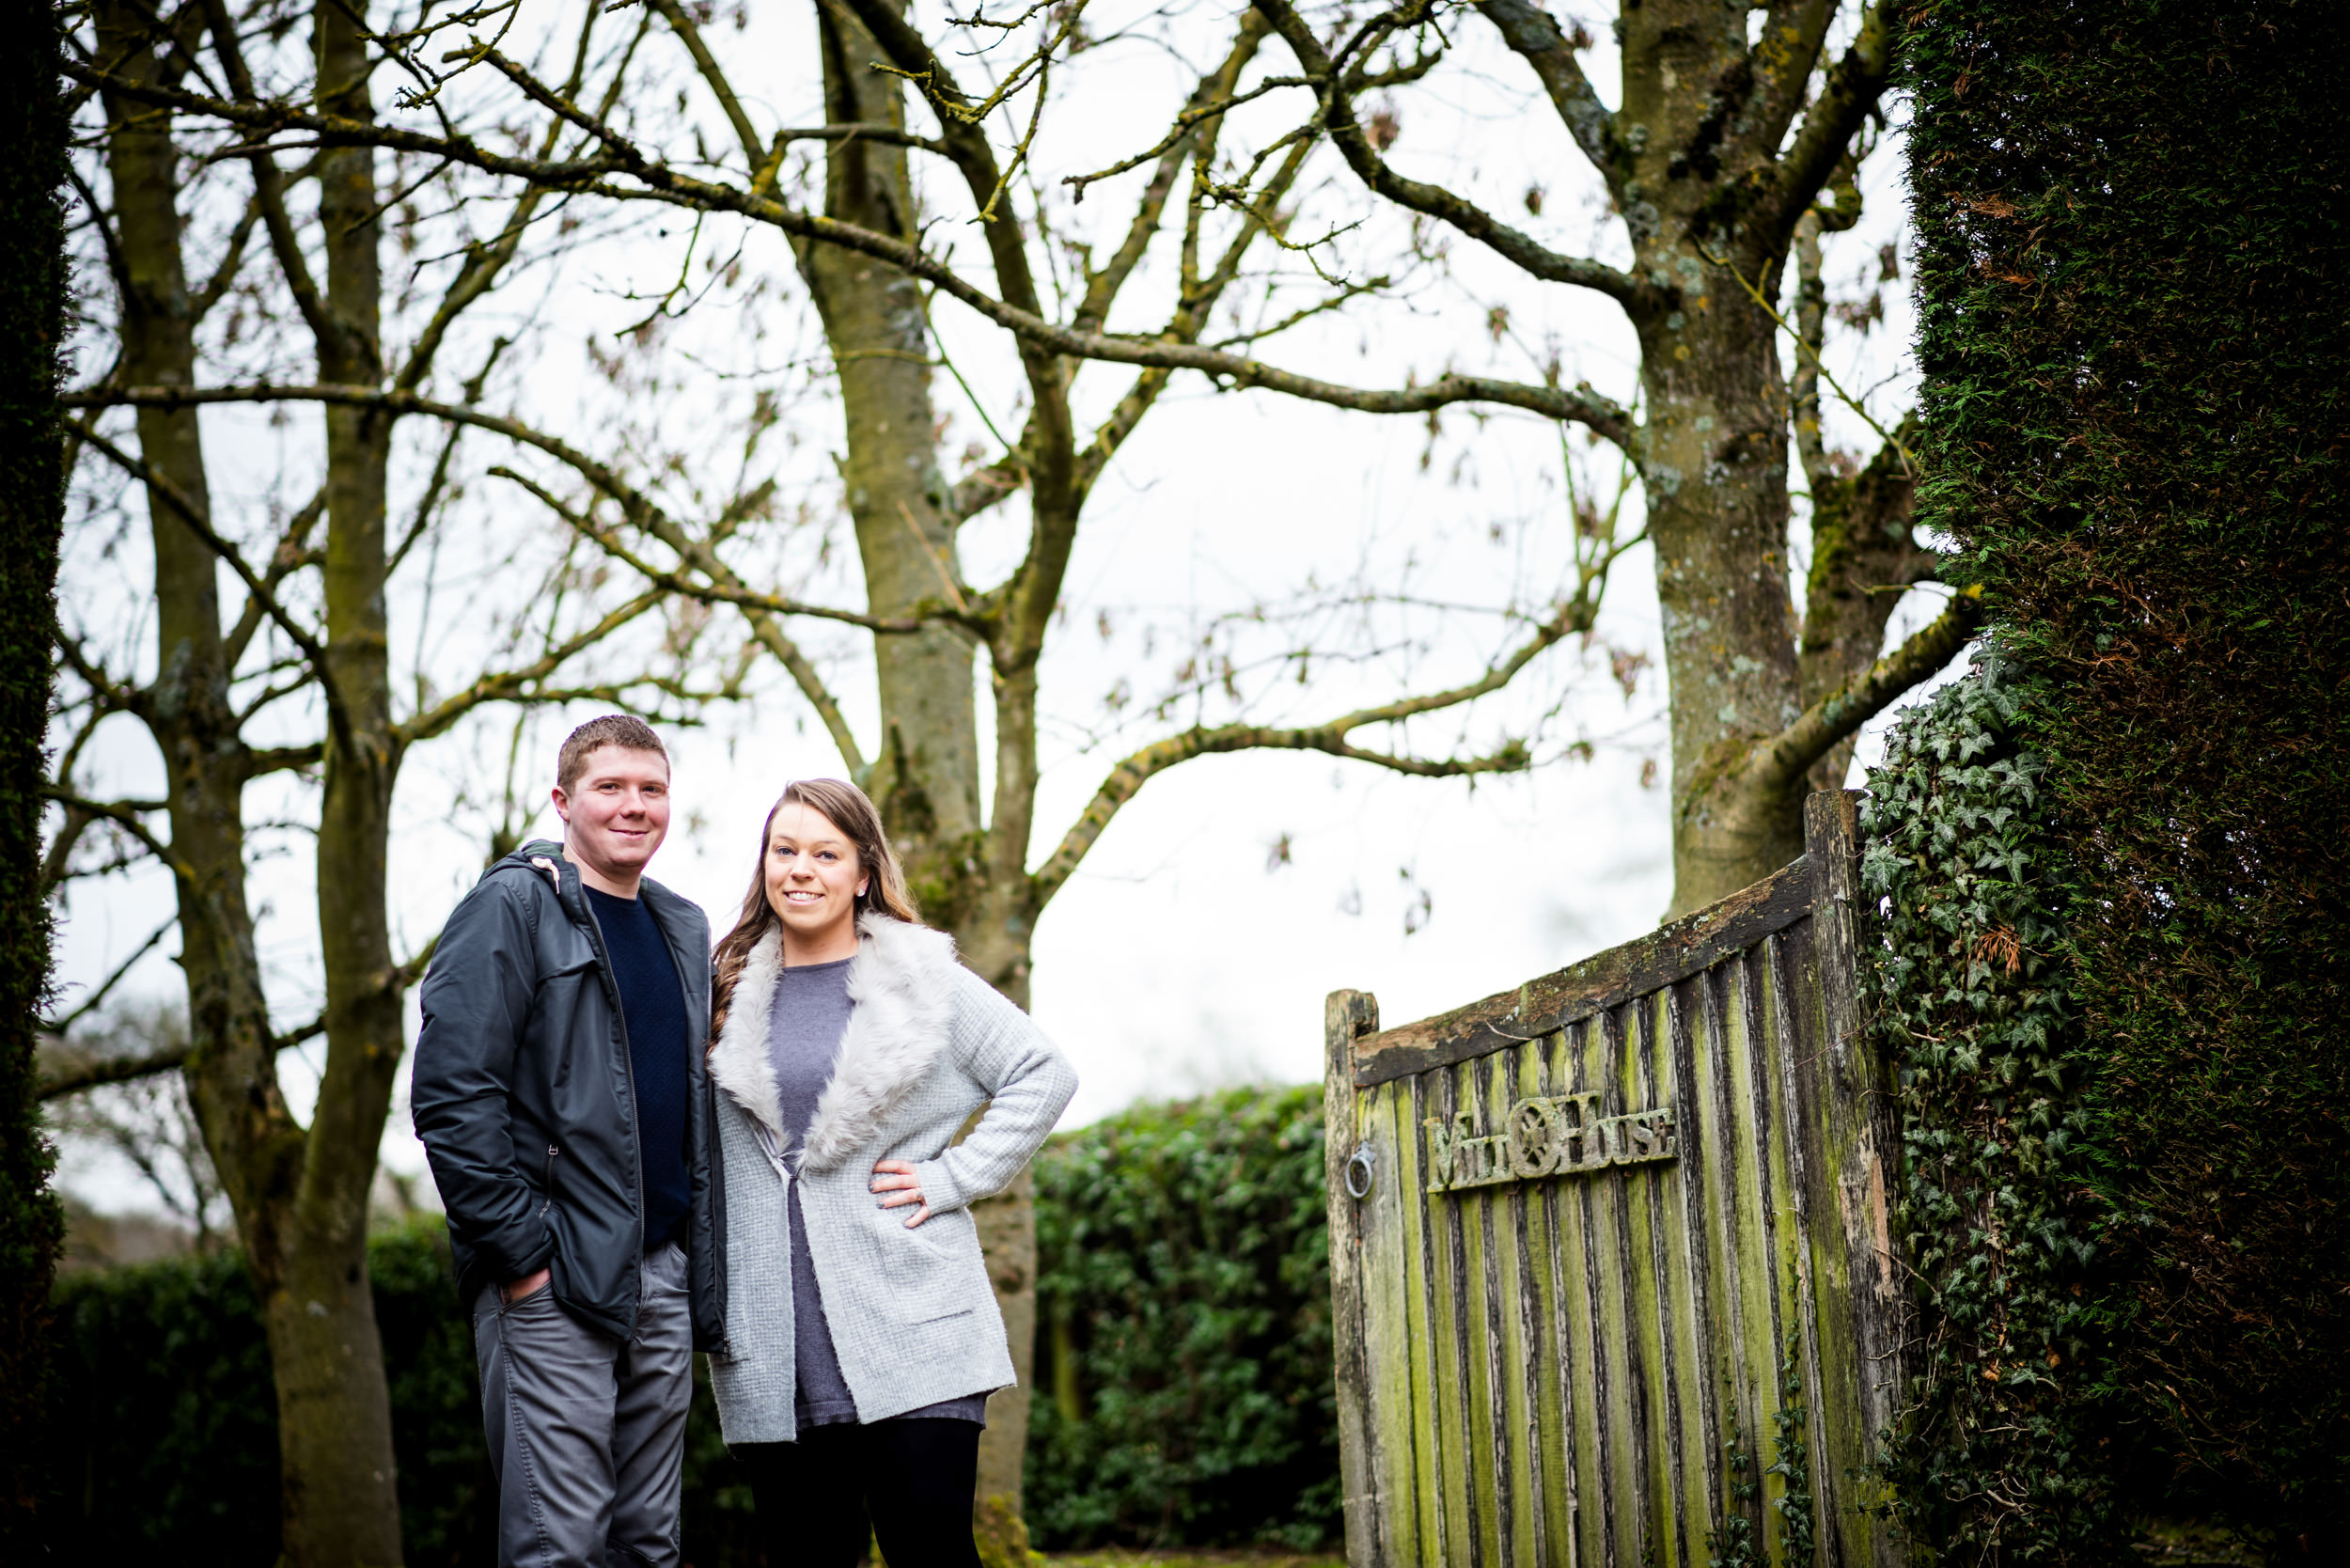 Smiling couple stood in a wooded driveway